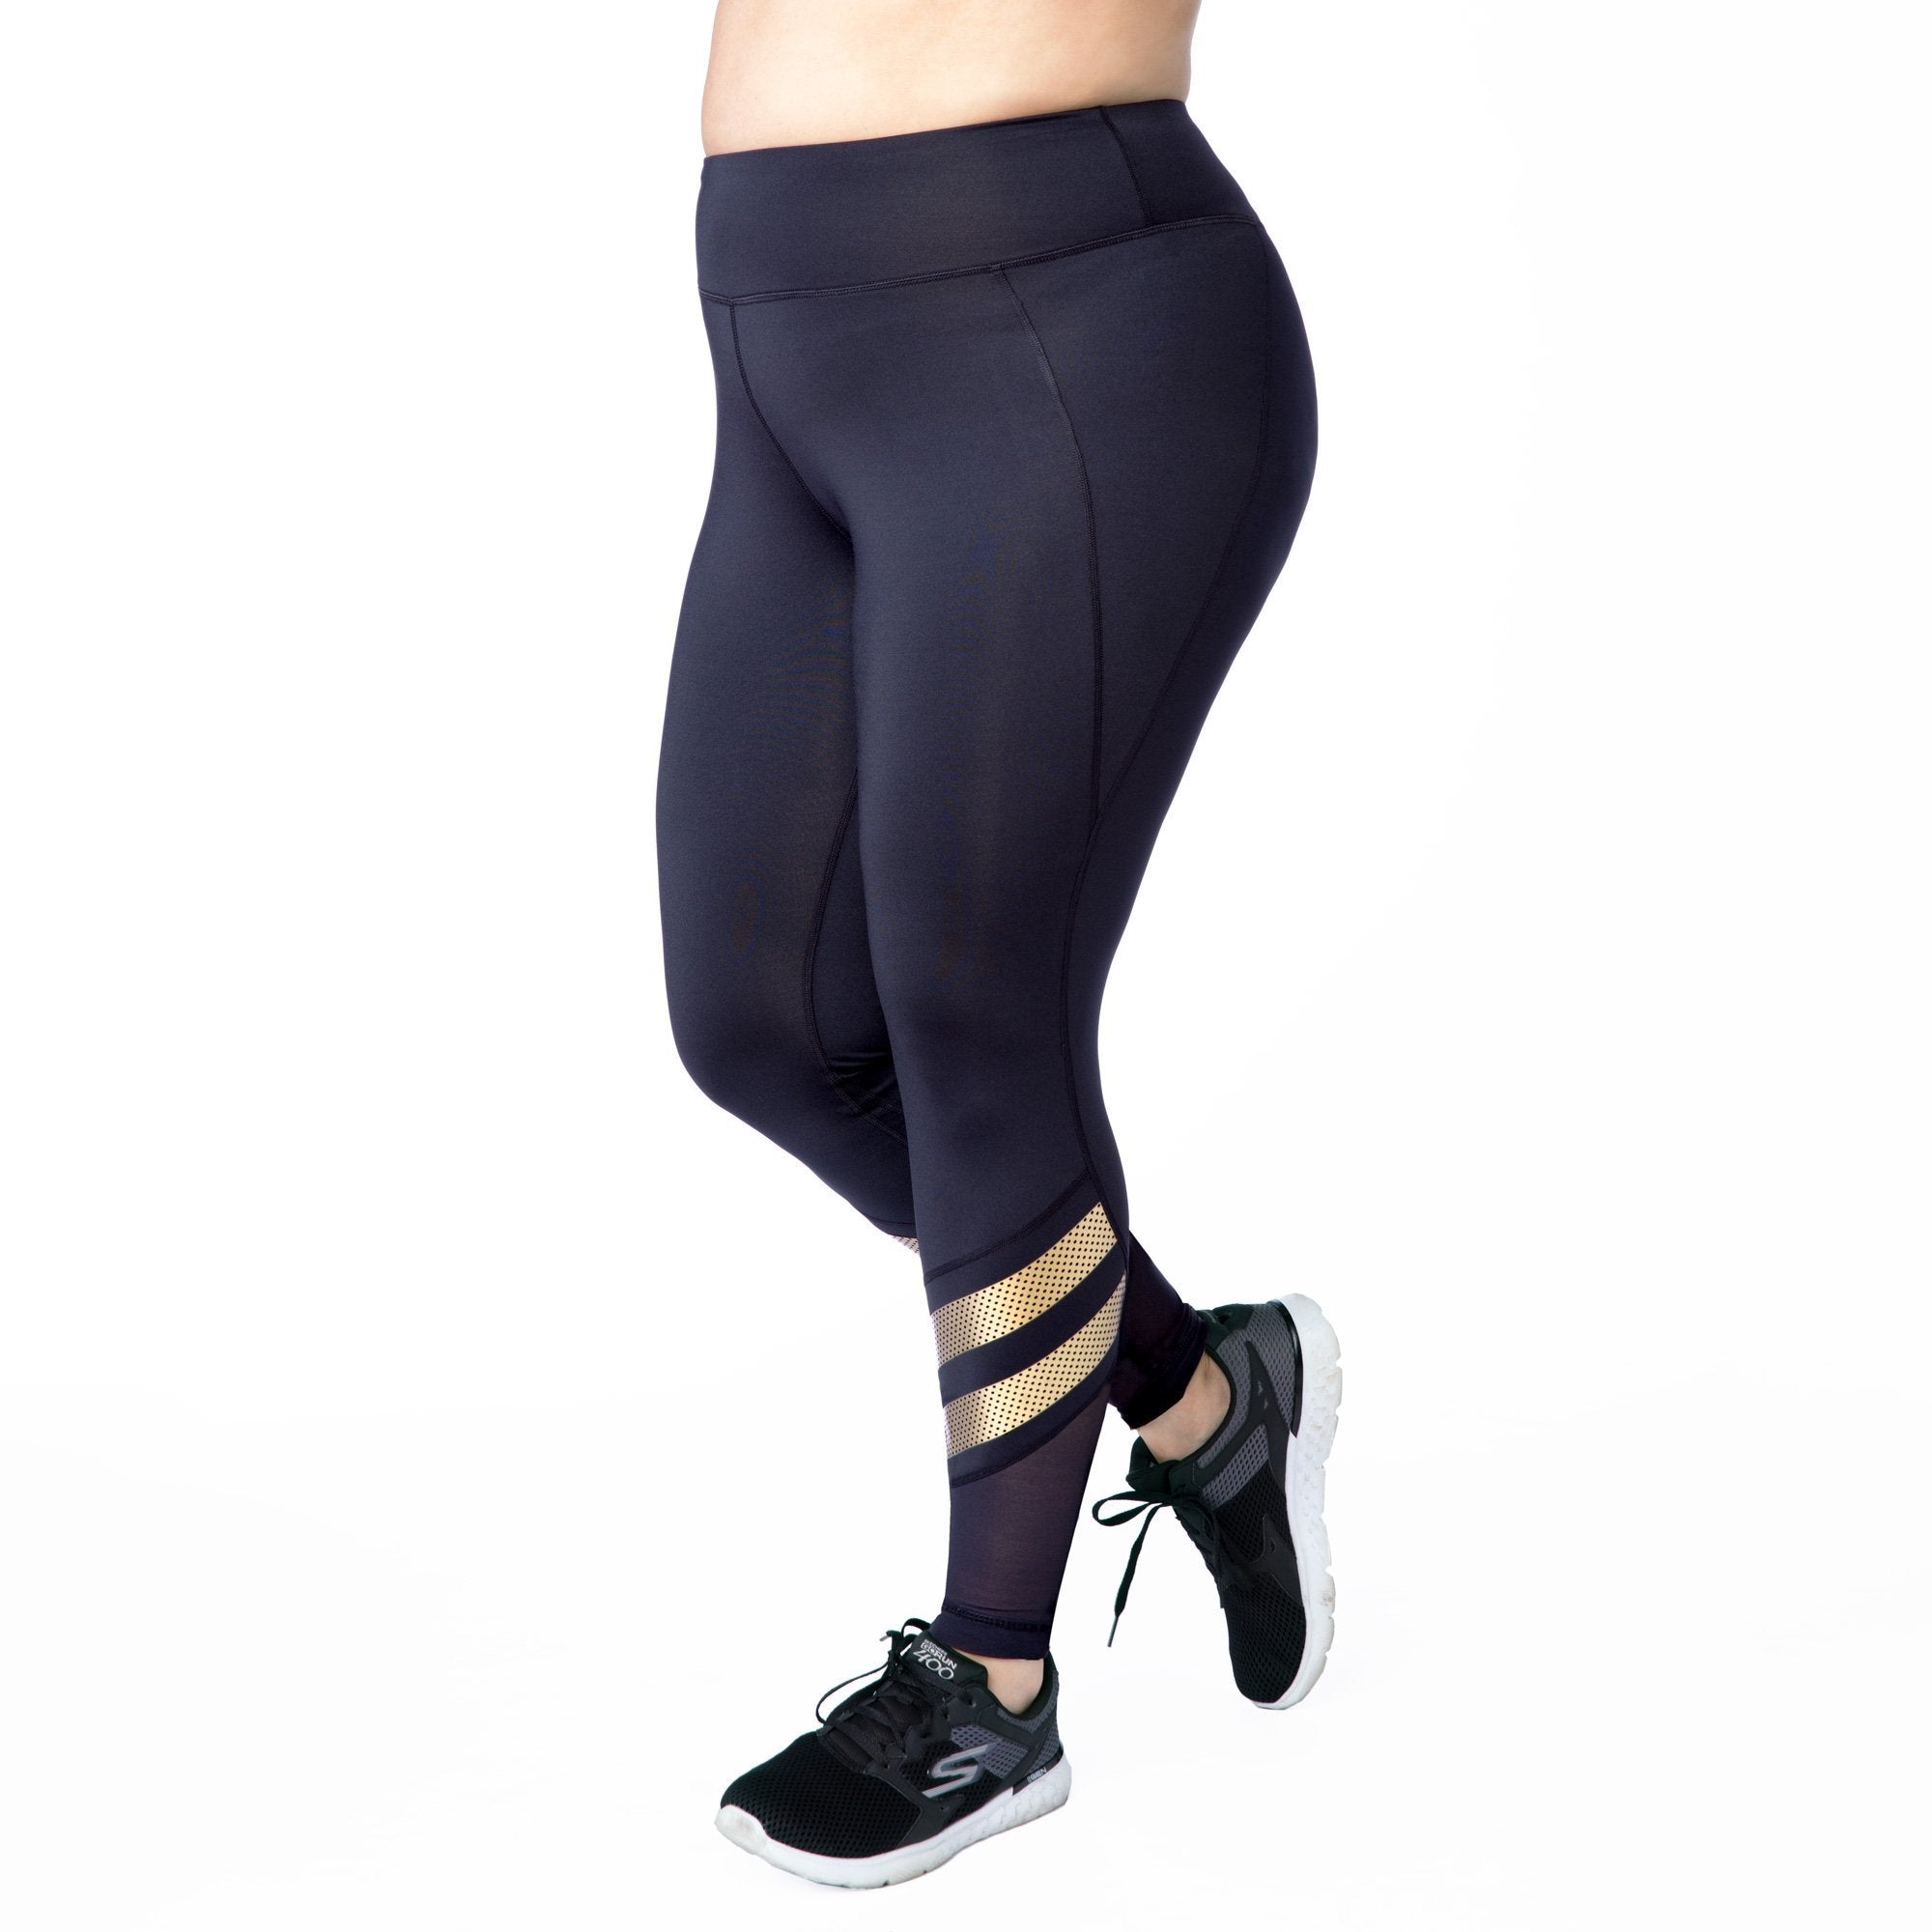 Eris Legging - Rainbeau Curves